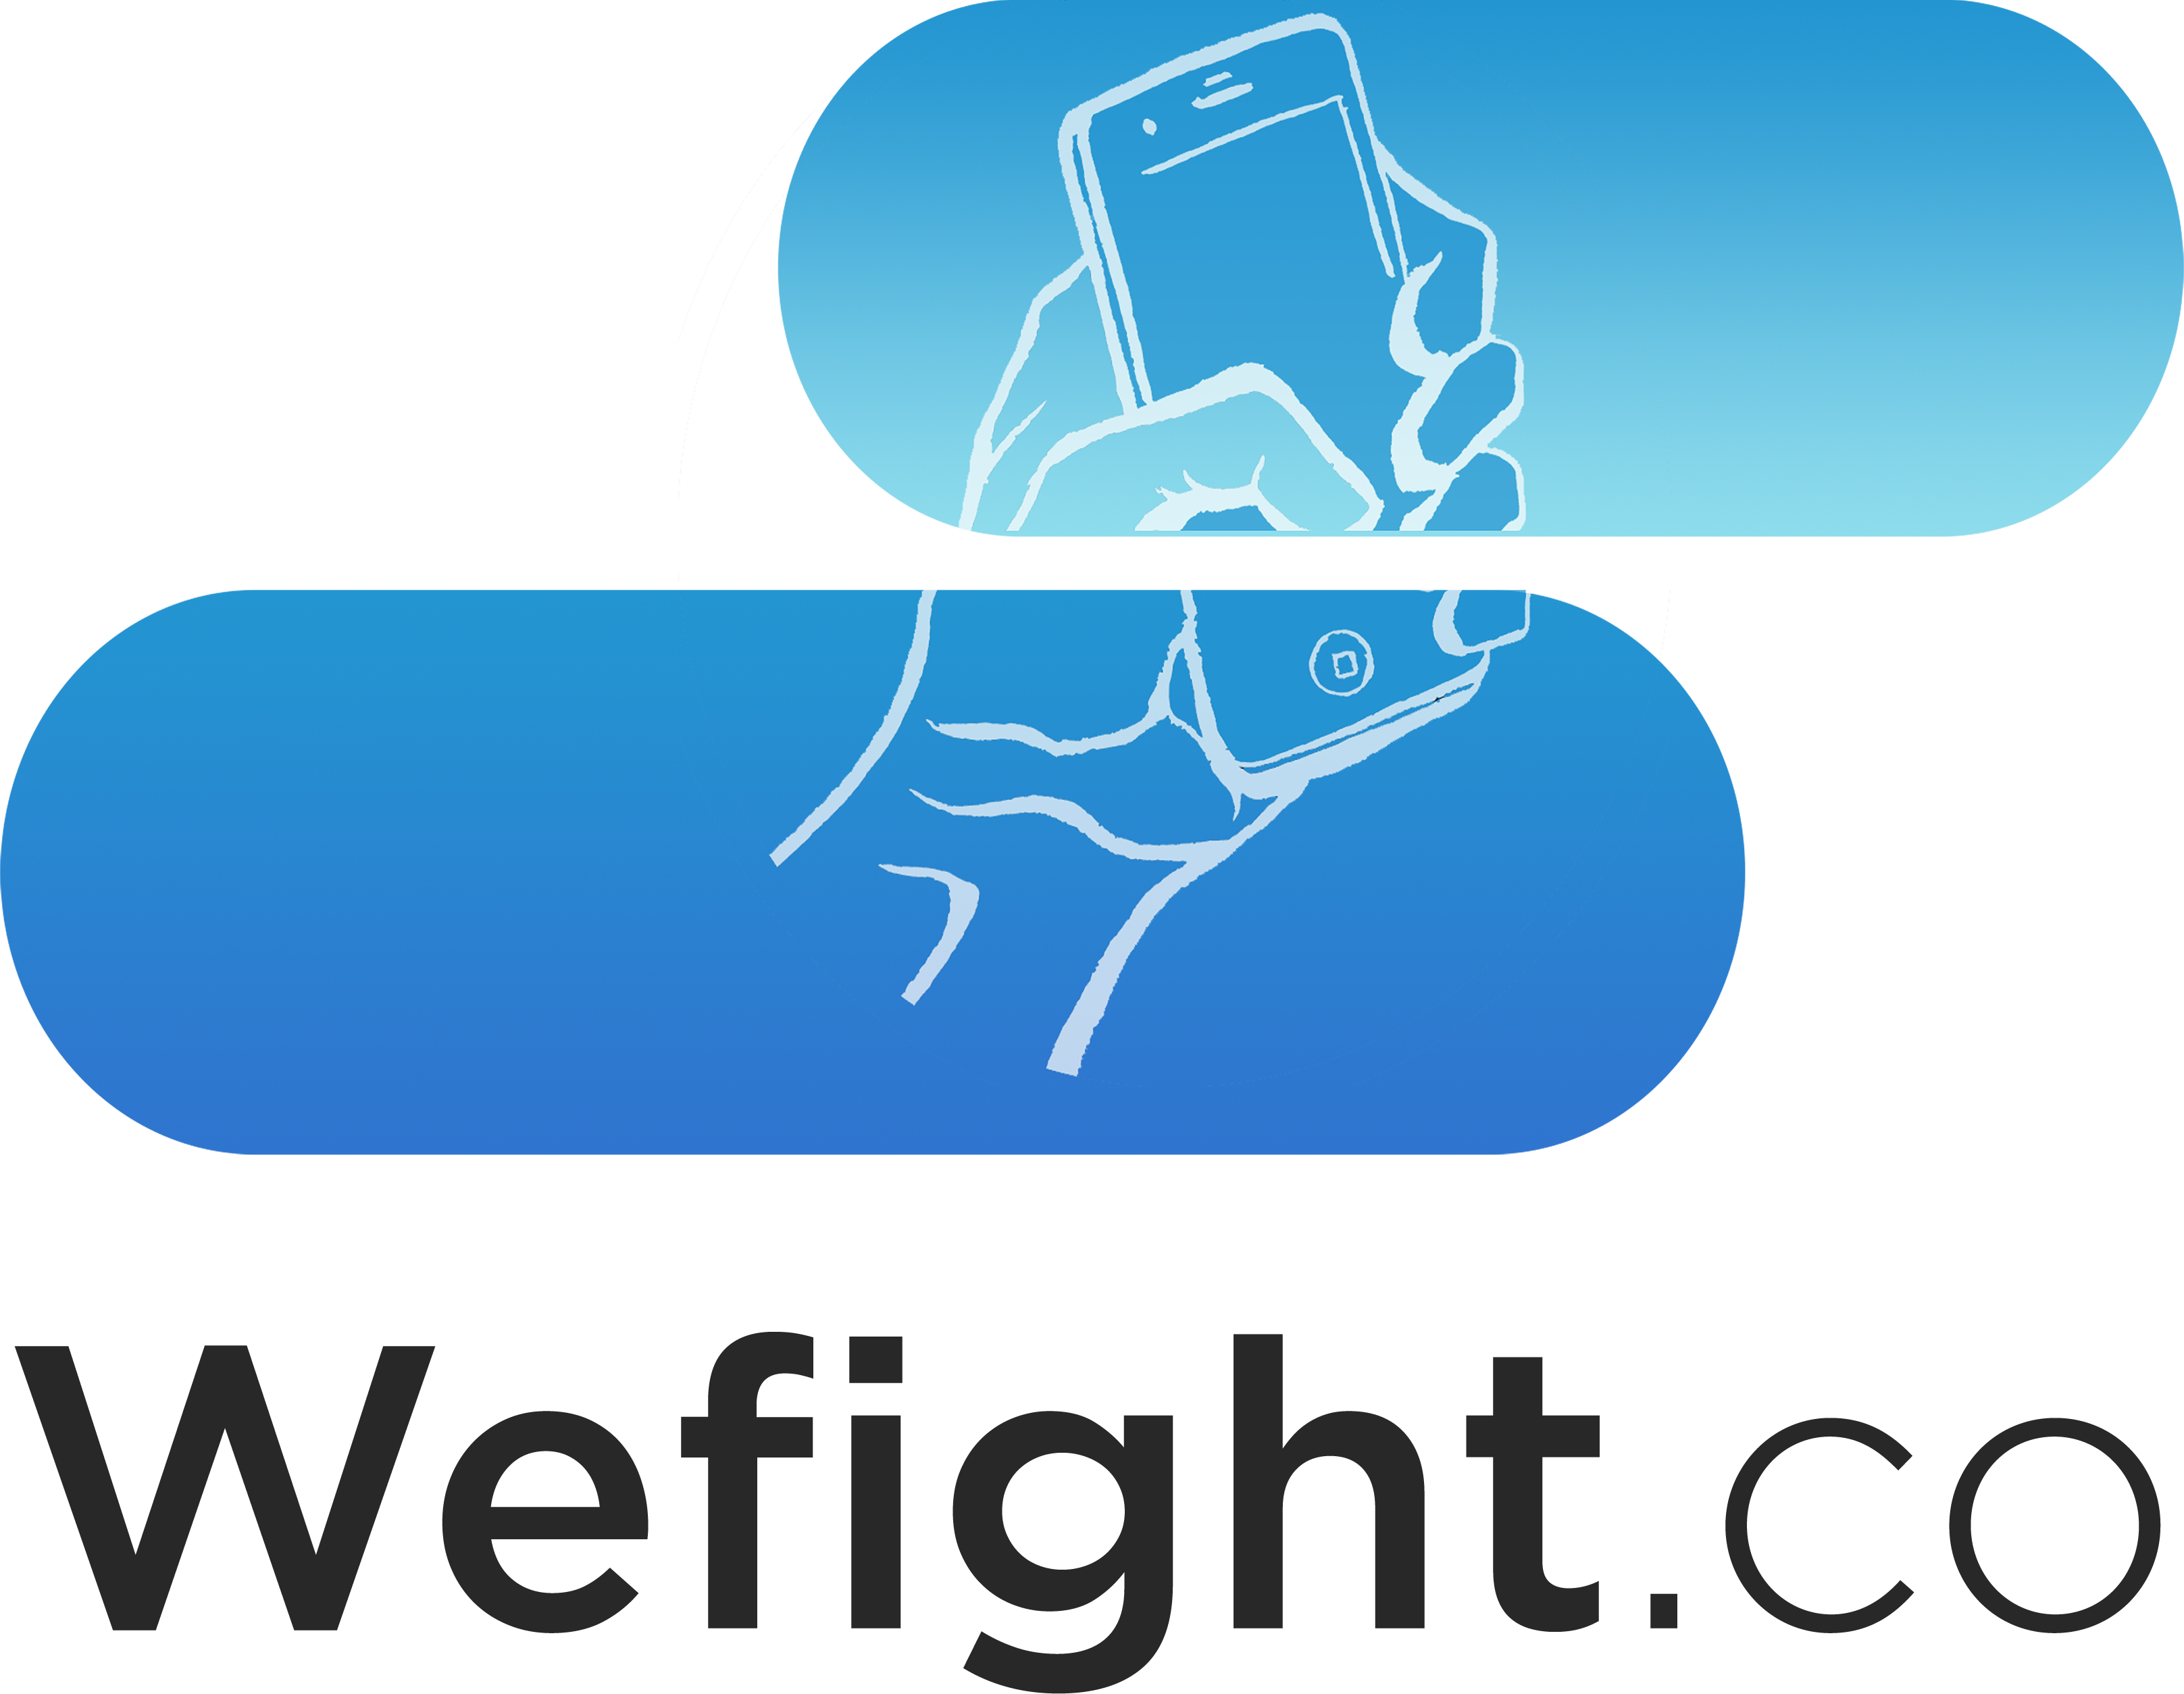 Press release: Clinerion partners with Wefight to optimize patient recruitment in clinical trials by leveraging artificial intelligence to identify eligible patients from Vik community.